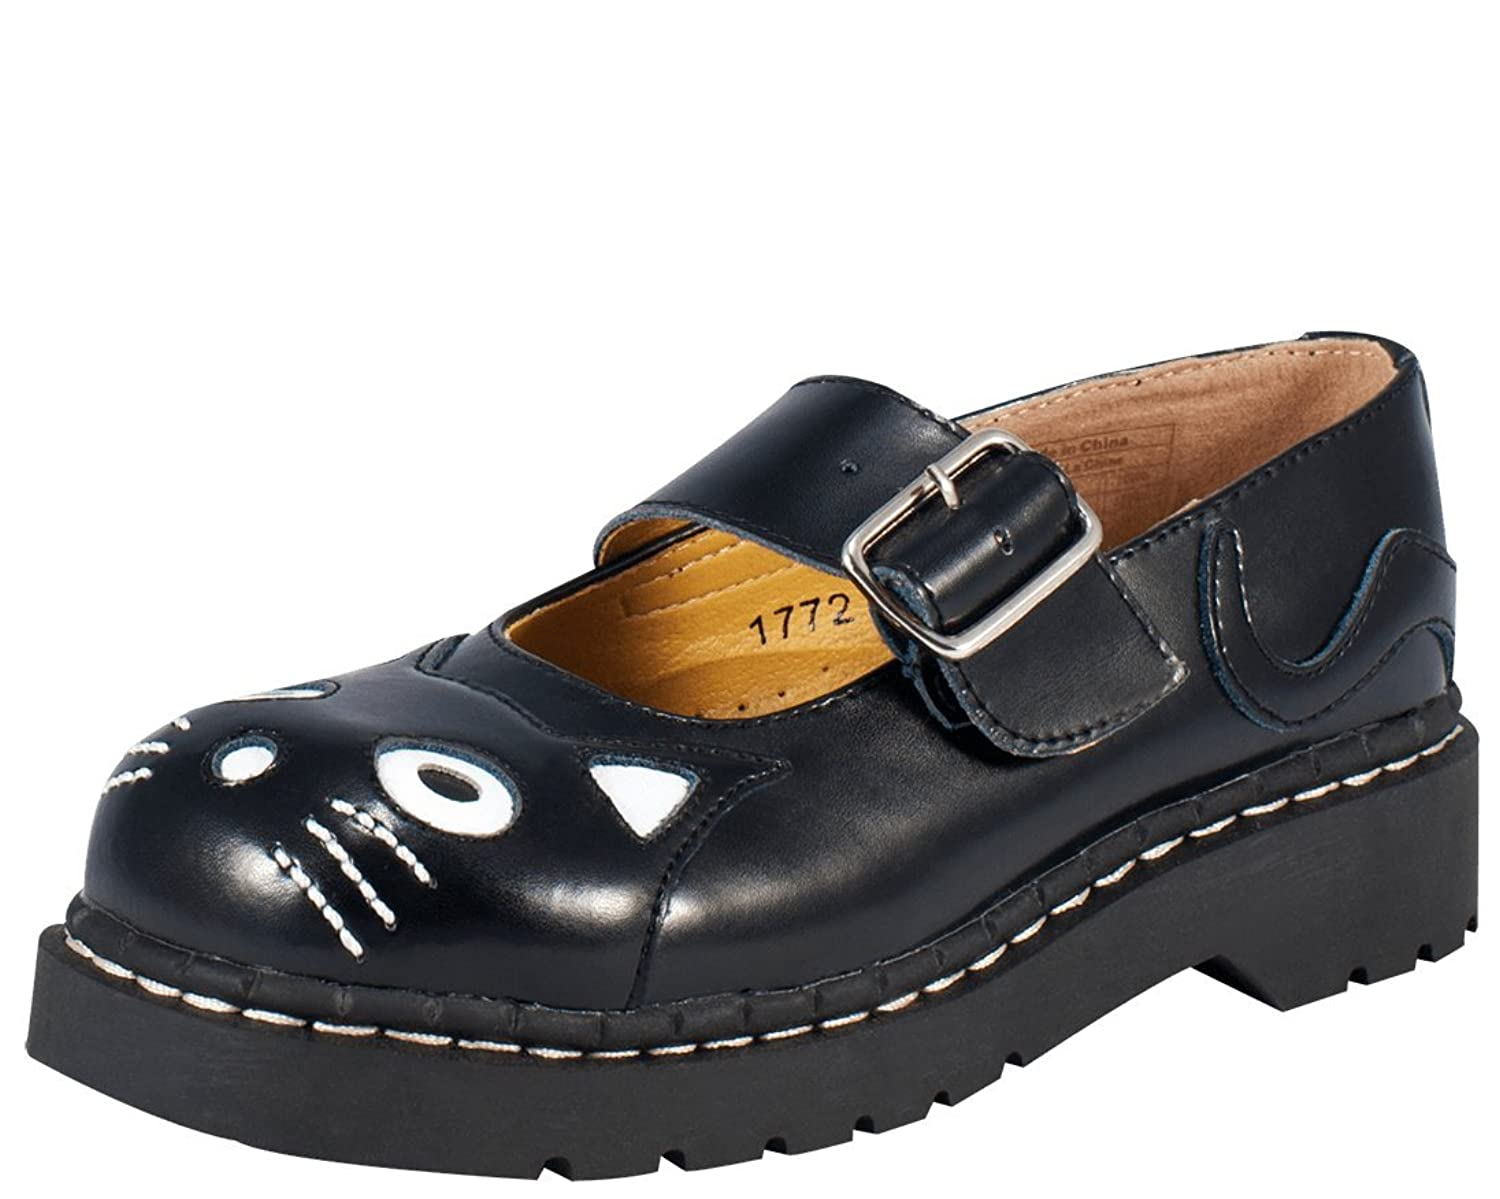 Womens A6467l Character Trainer Mary Jane T.U.K. OiivvK2lRl